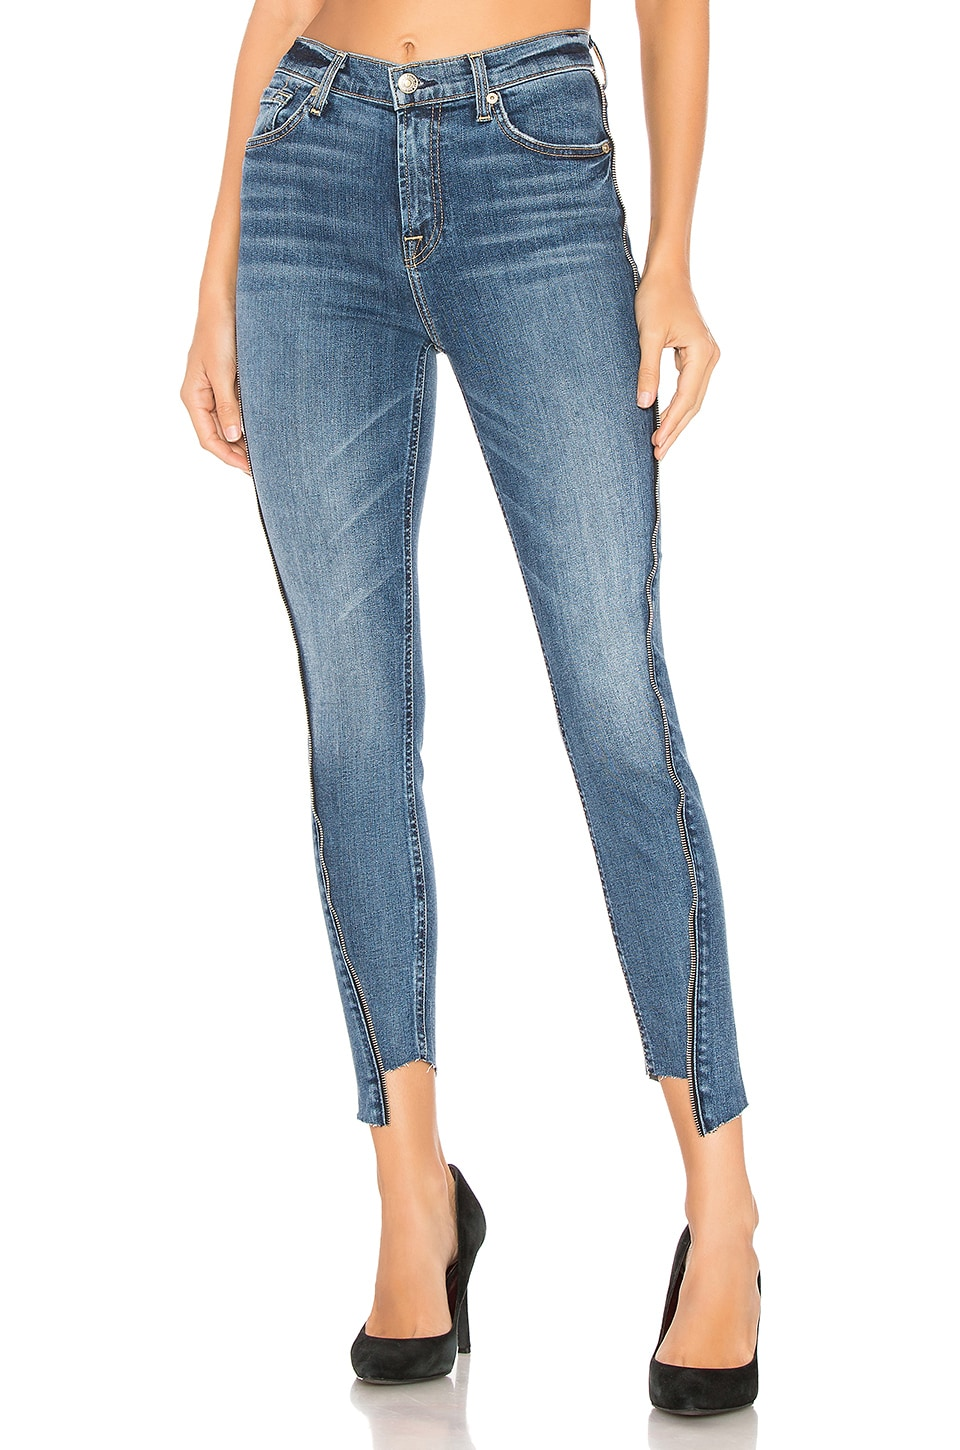 7 For All Mankind High Waist Ankle Skinny With Zippers in Canyon Ranch